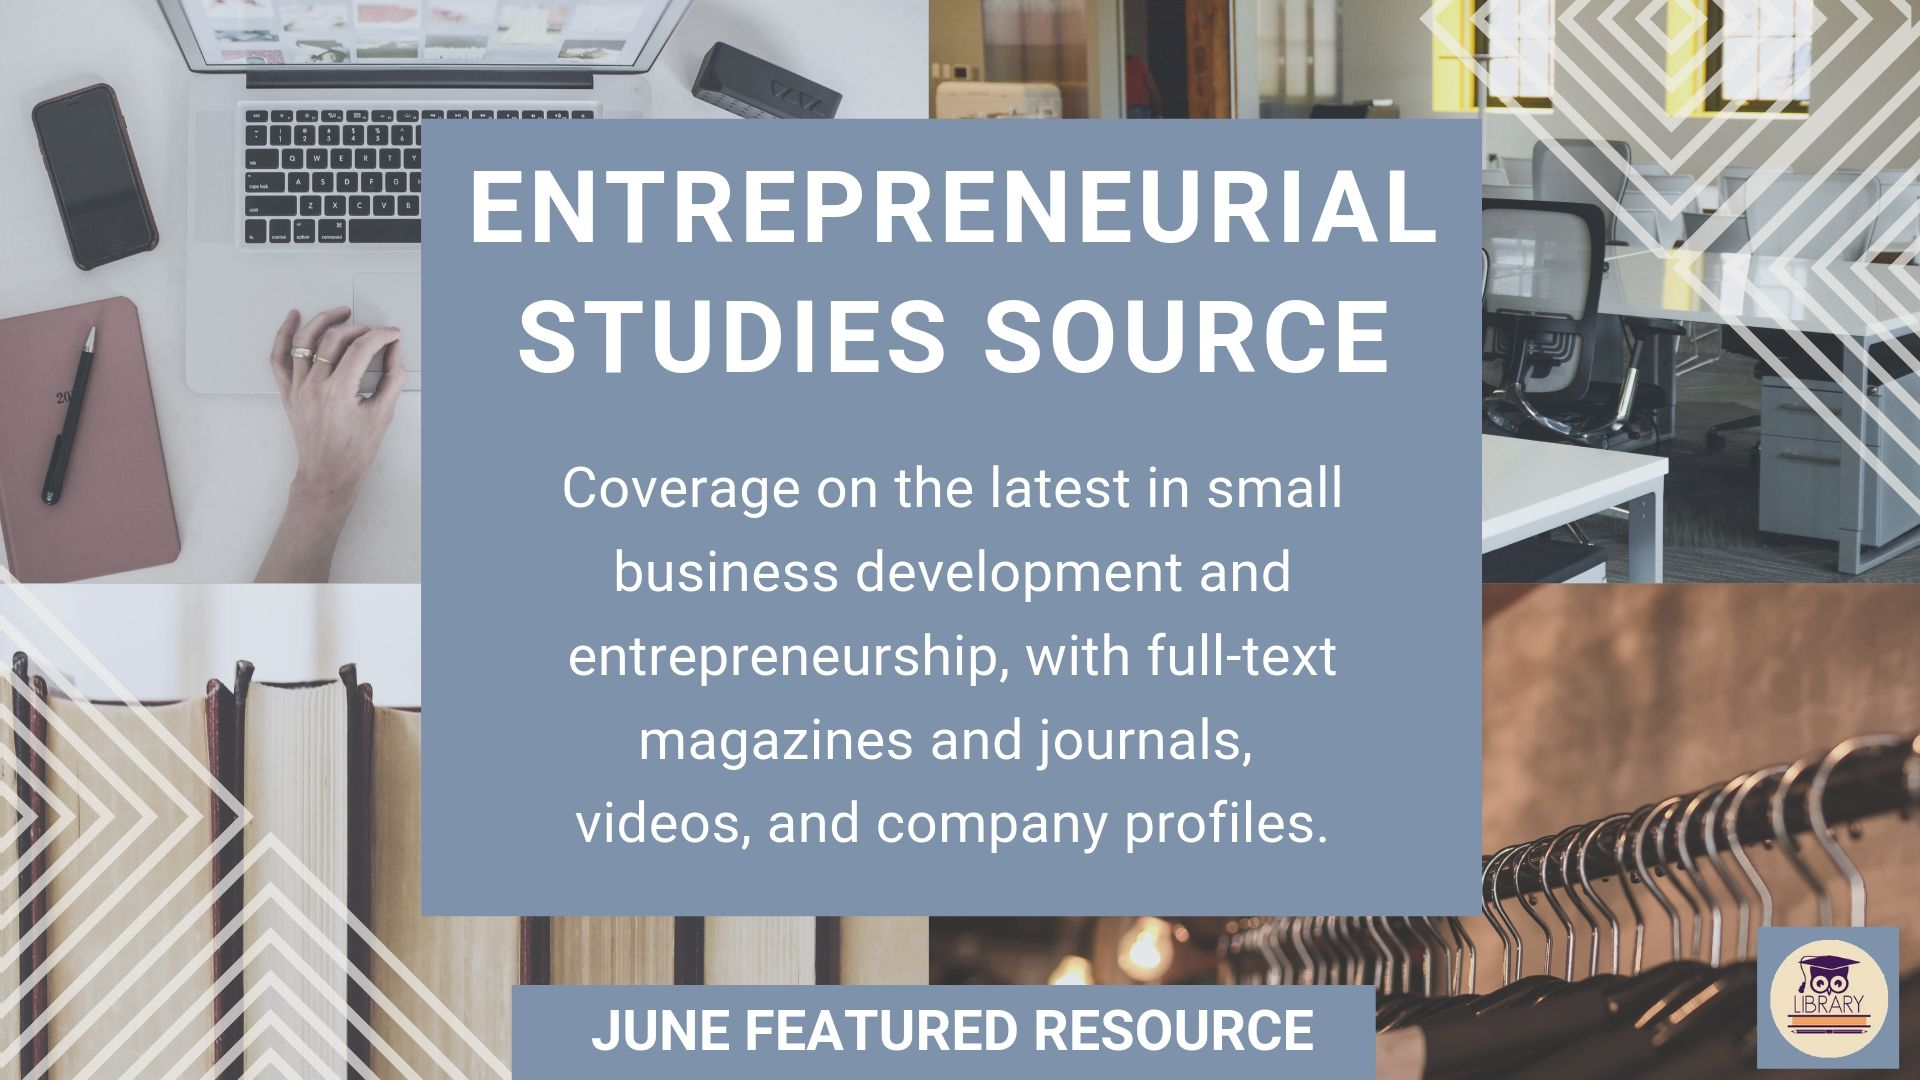 Find info on small business development and more with Entrepreneurial Studies Source